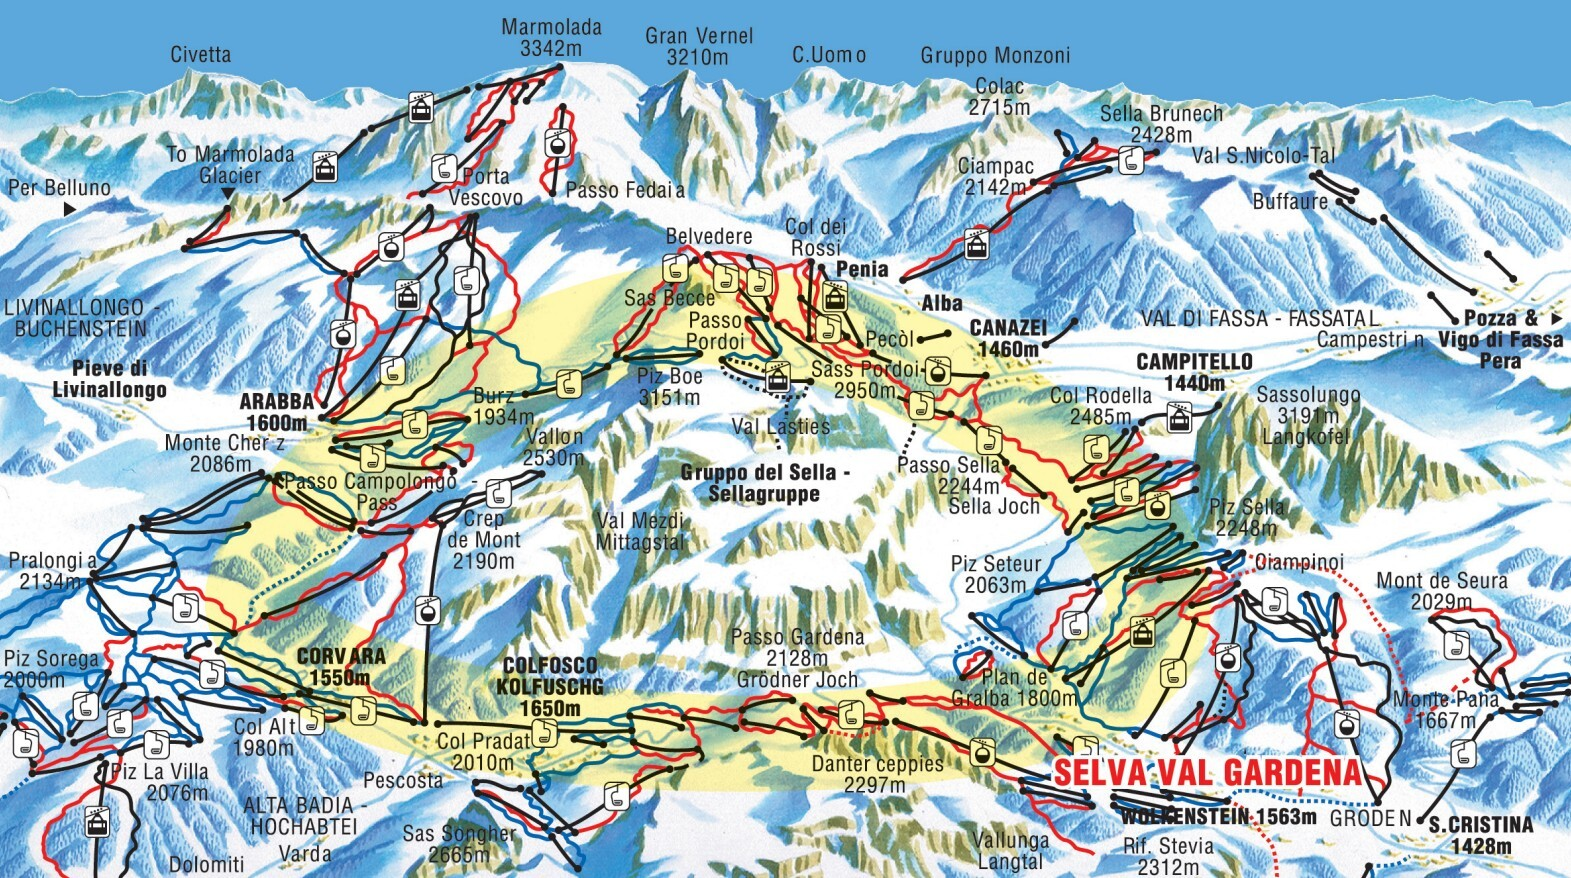 Campitello Piste / Trail Map